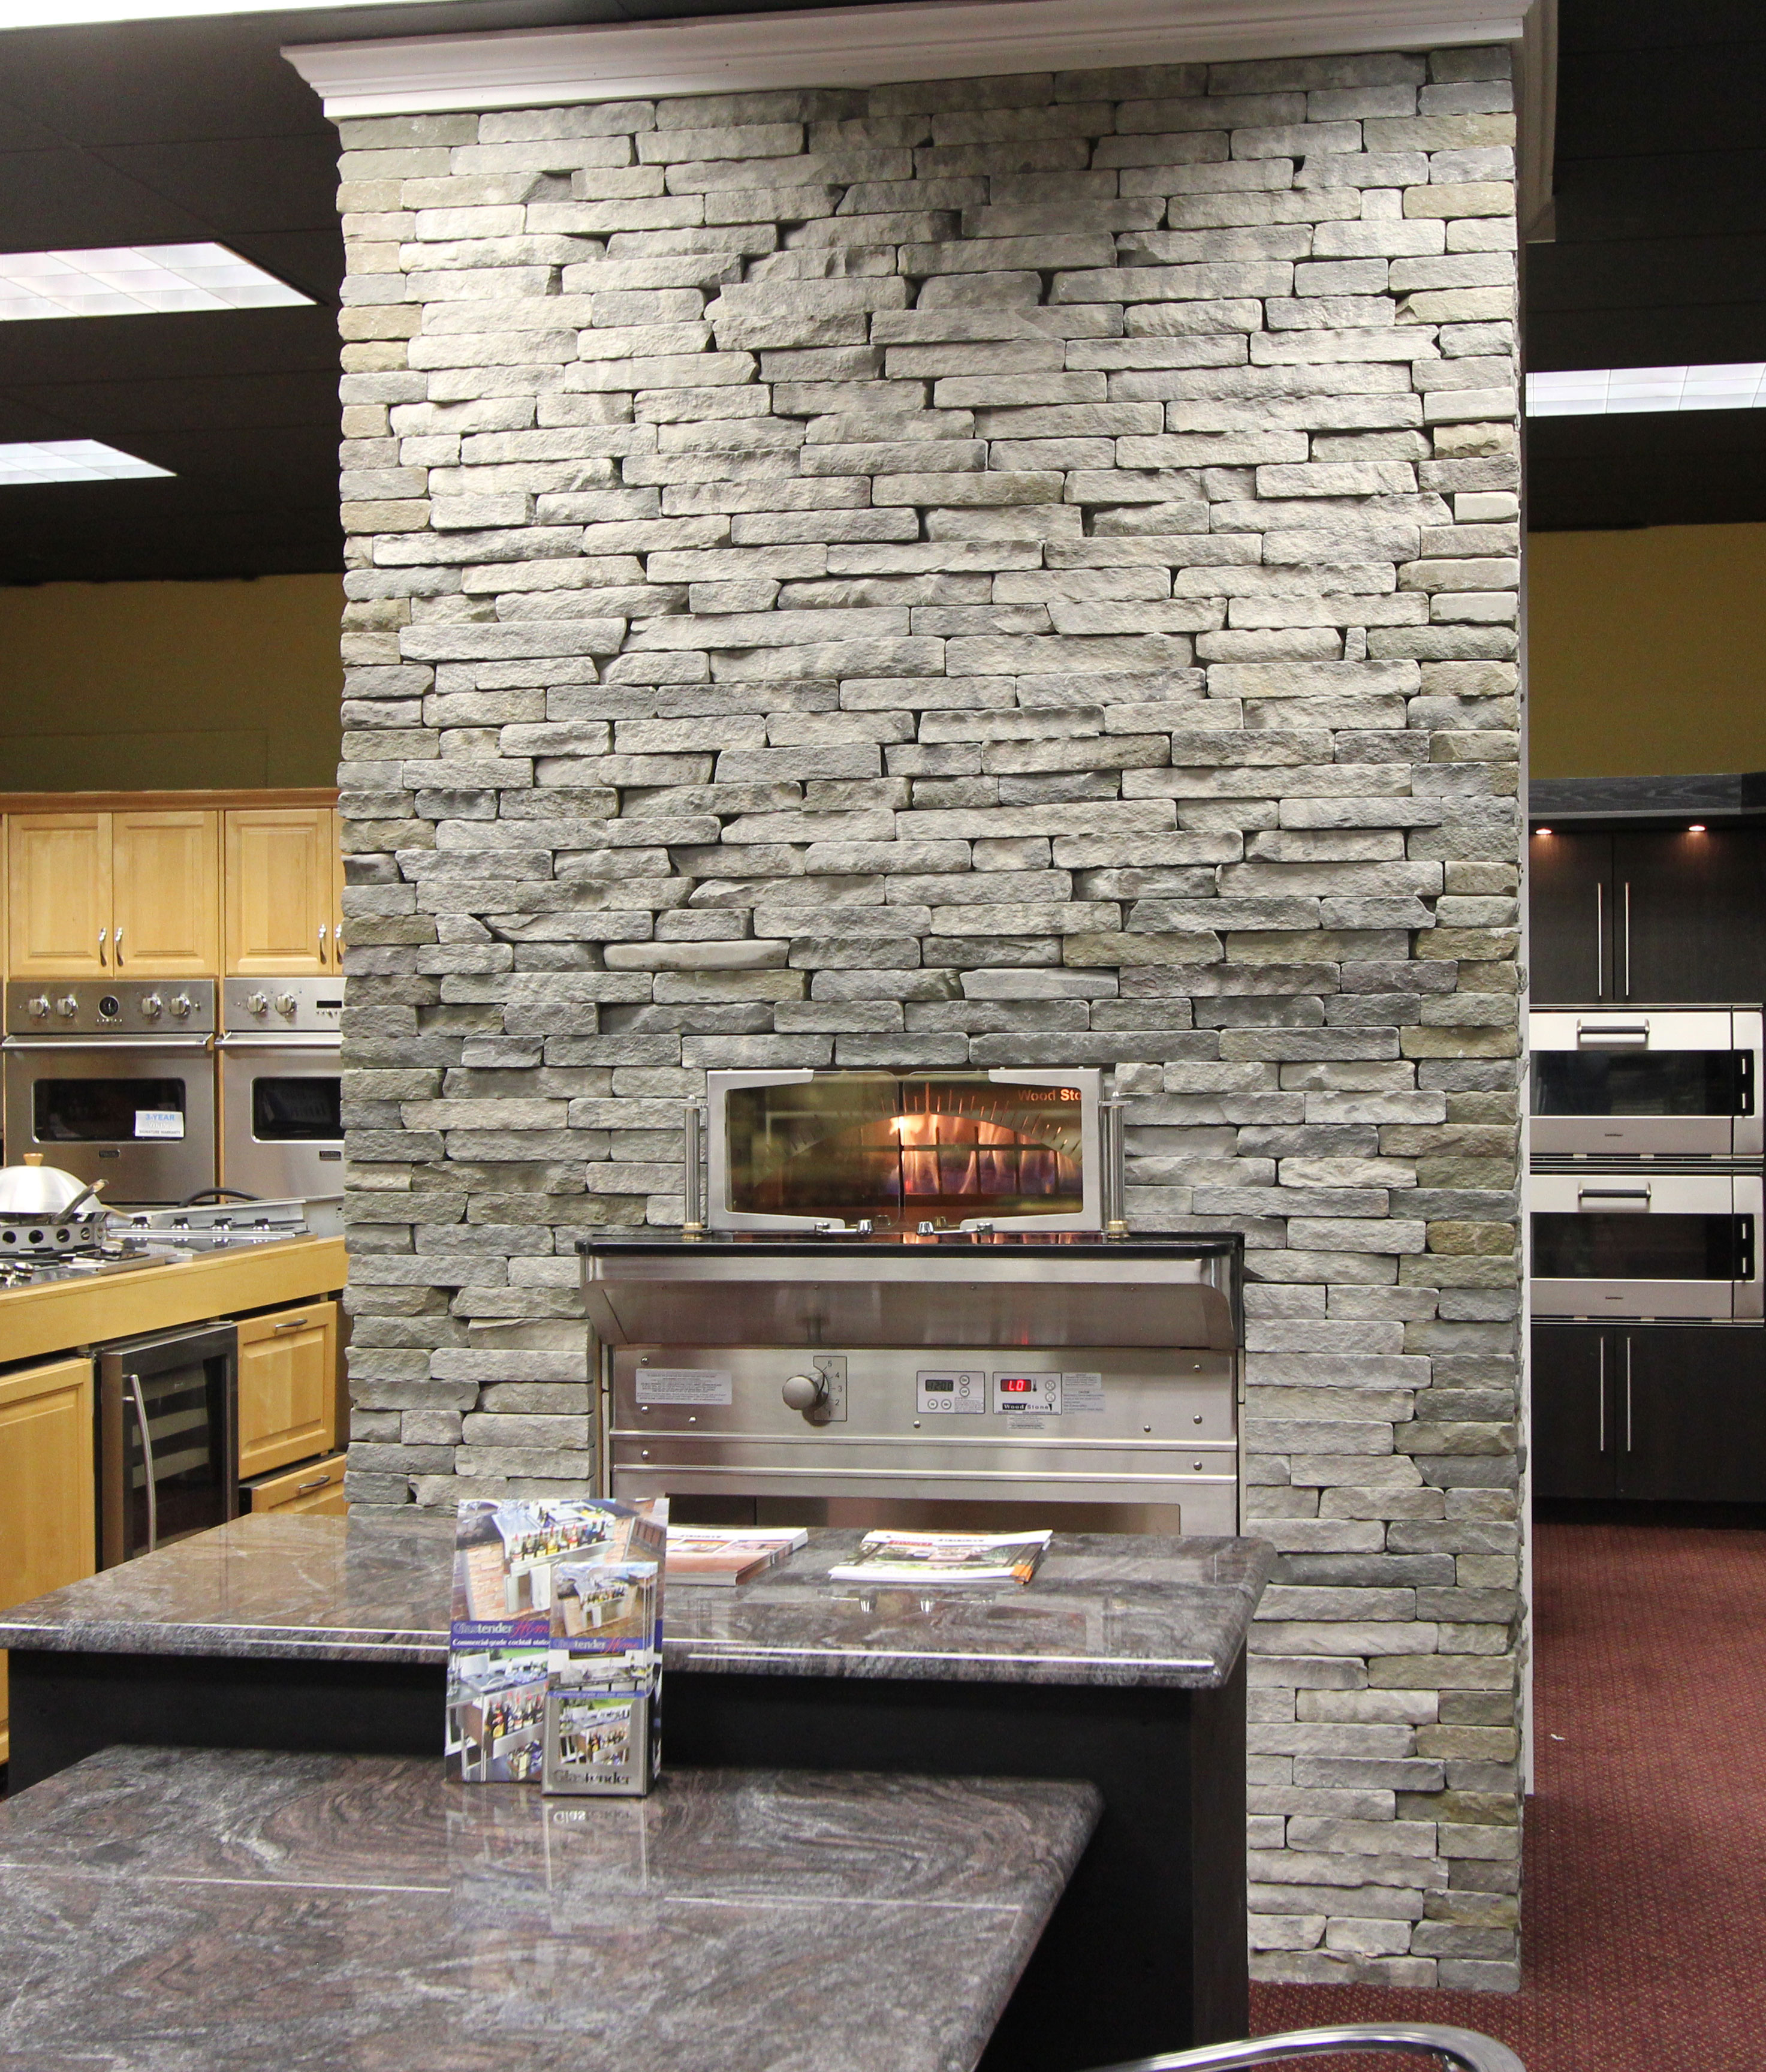 Wood Stone Home Ovens Blog Lansdale Kitchen Appliances